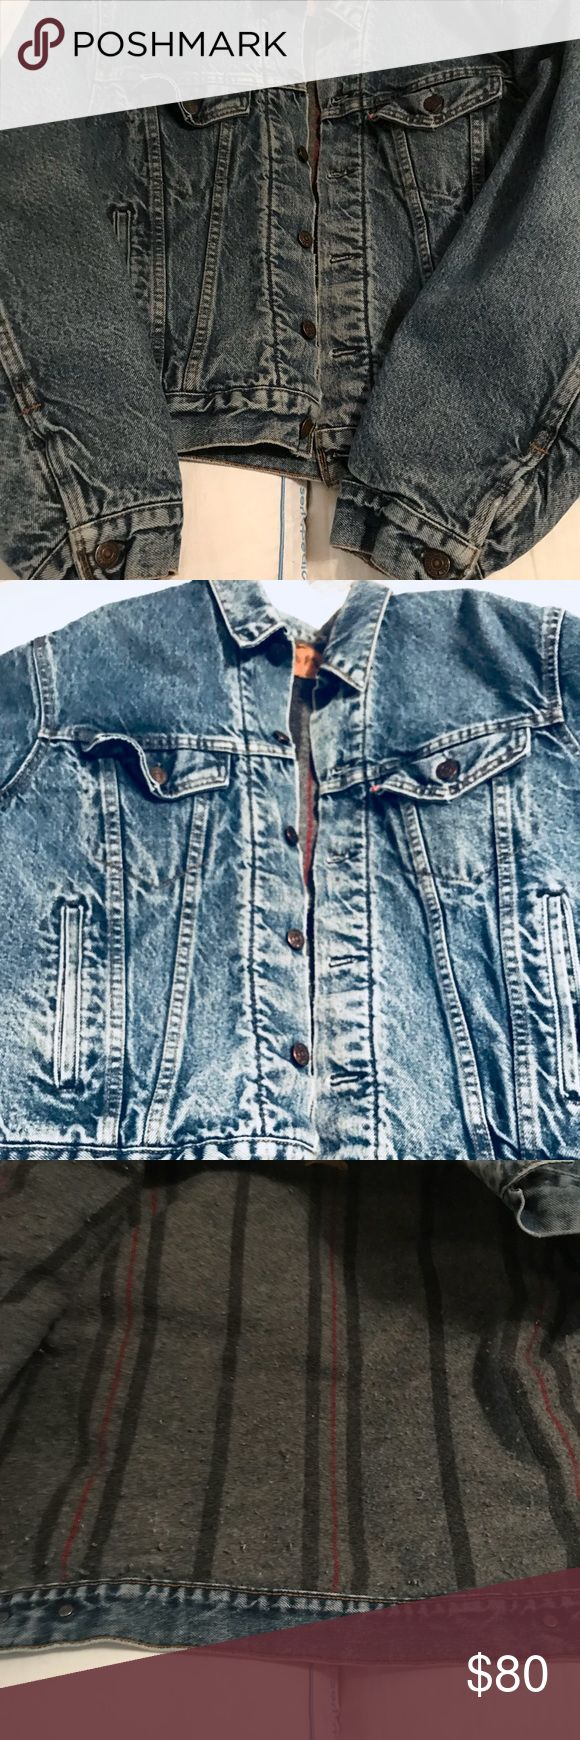 Vintage Levies Blanket Lined Jean Jacket Nice , heavy blanket lined Levi Jacket. Size 46. I wear a large size hoodie and this fits me great! Levi's Jackets & Coats